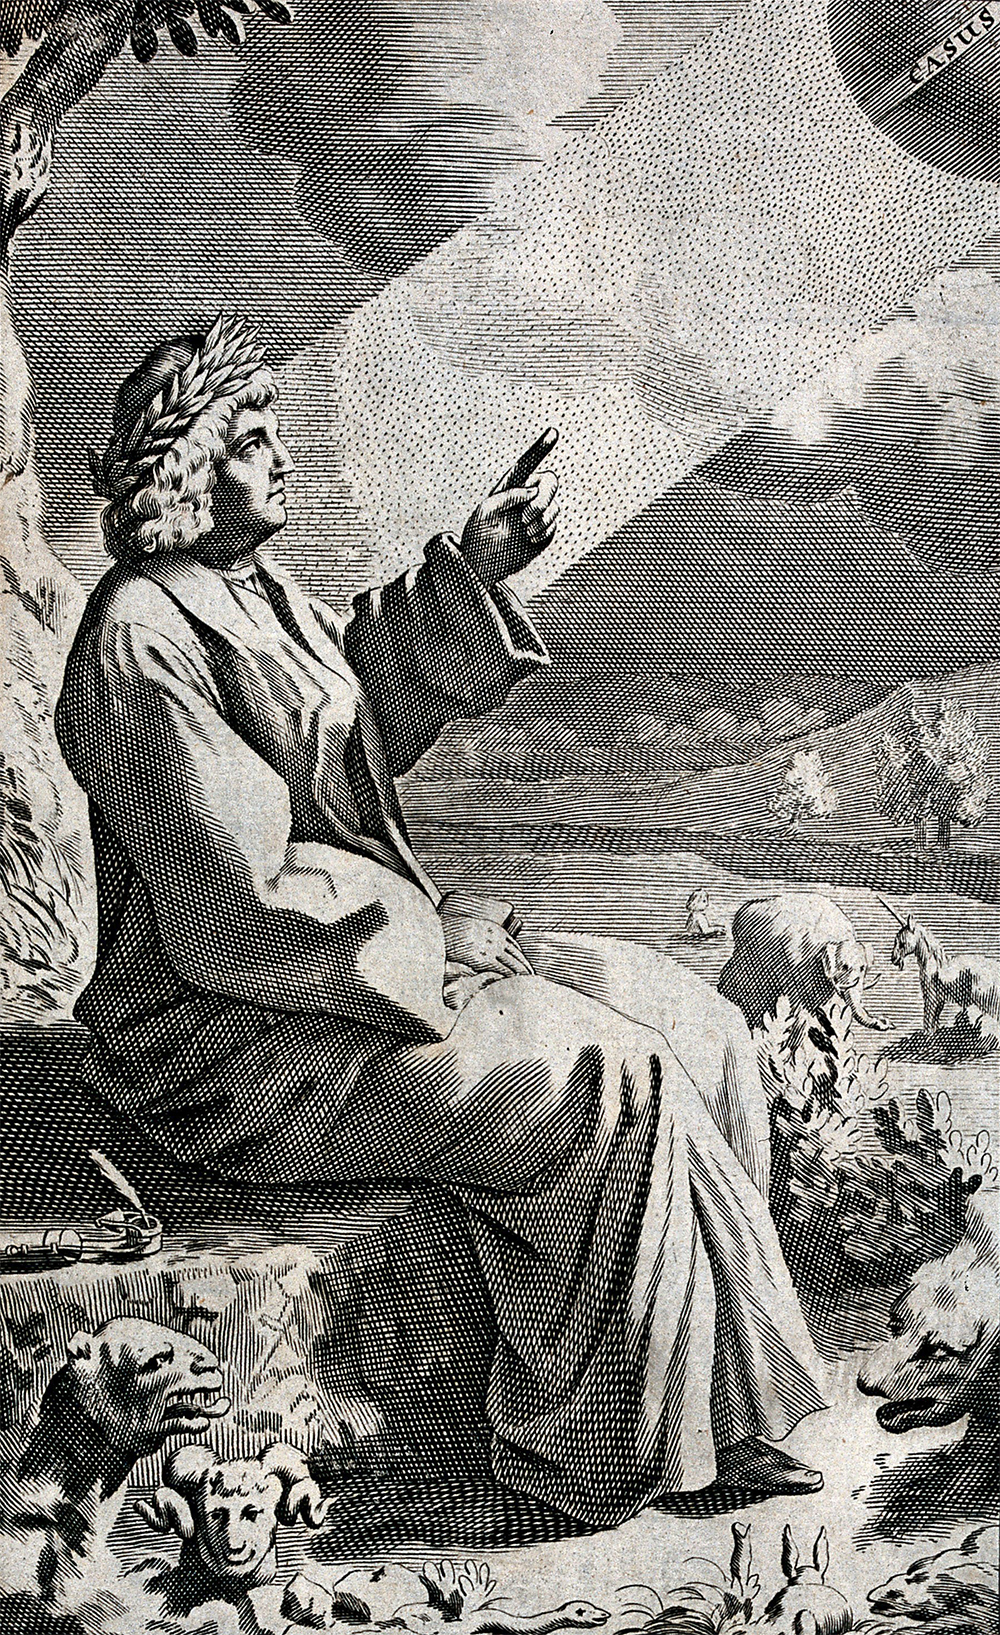 Lucretius pointing up at the revolving globe of Chance in the sky. Engraving by Michael Burghers, after Thomas Creech, c. 1682. Wellcome Collection (CC BY 4.0).